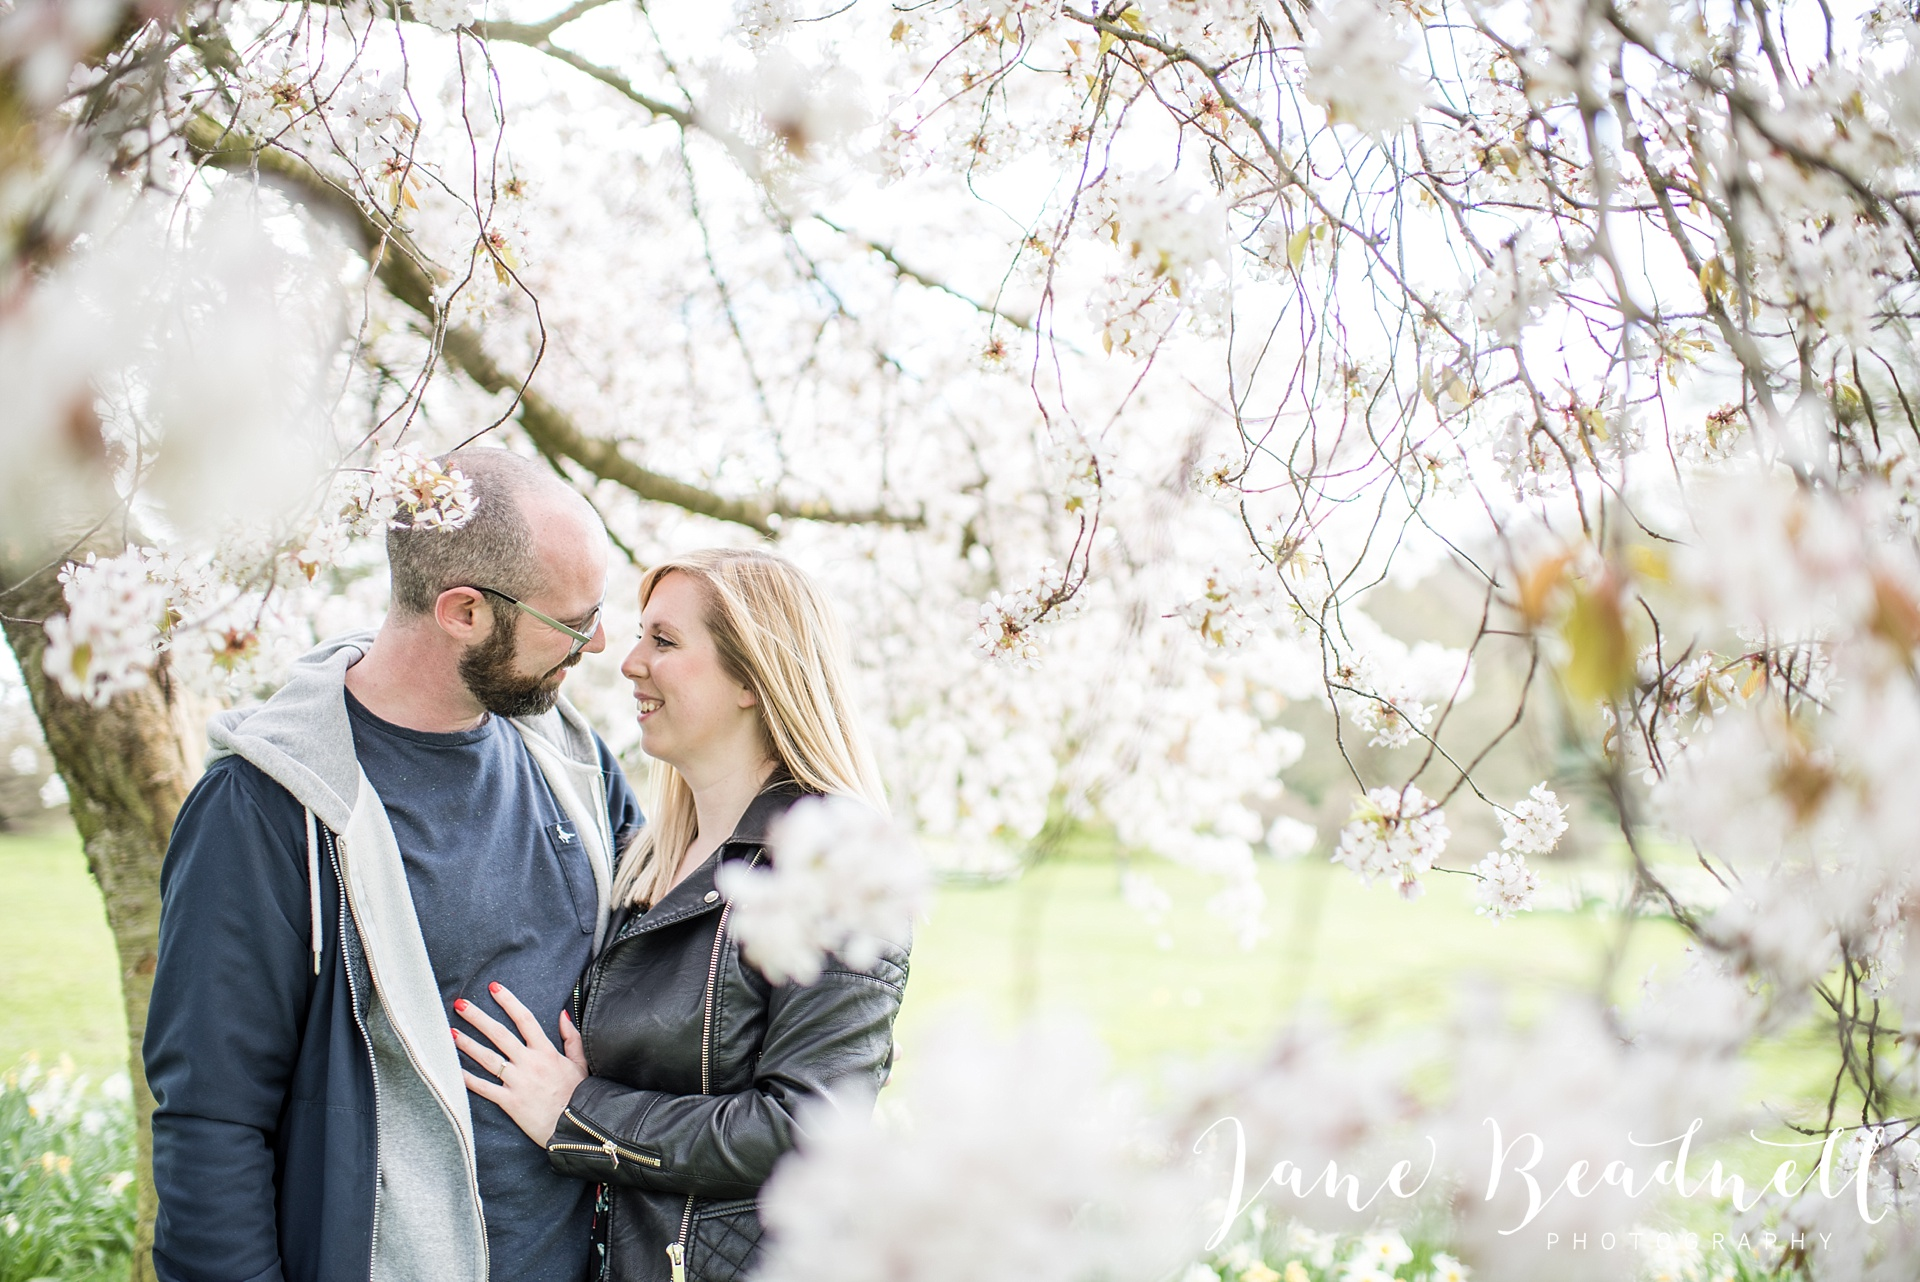 Temple Newsam engagement photography by Jane Beadnell Wedding Photography_0006